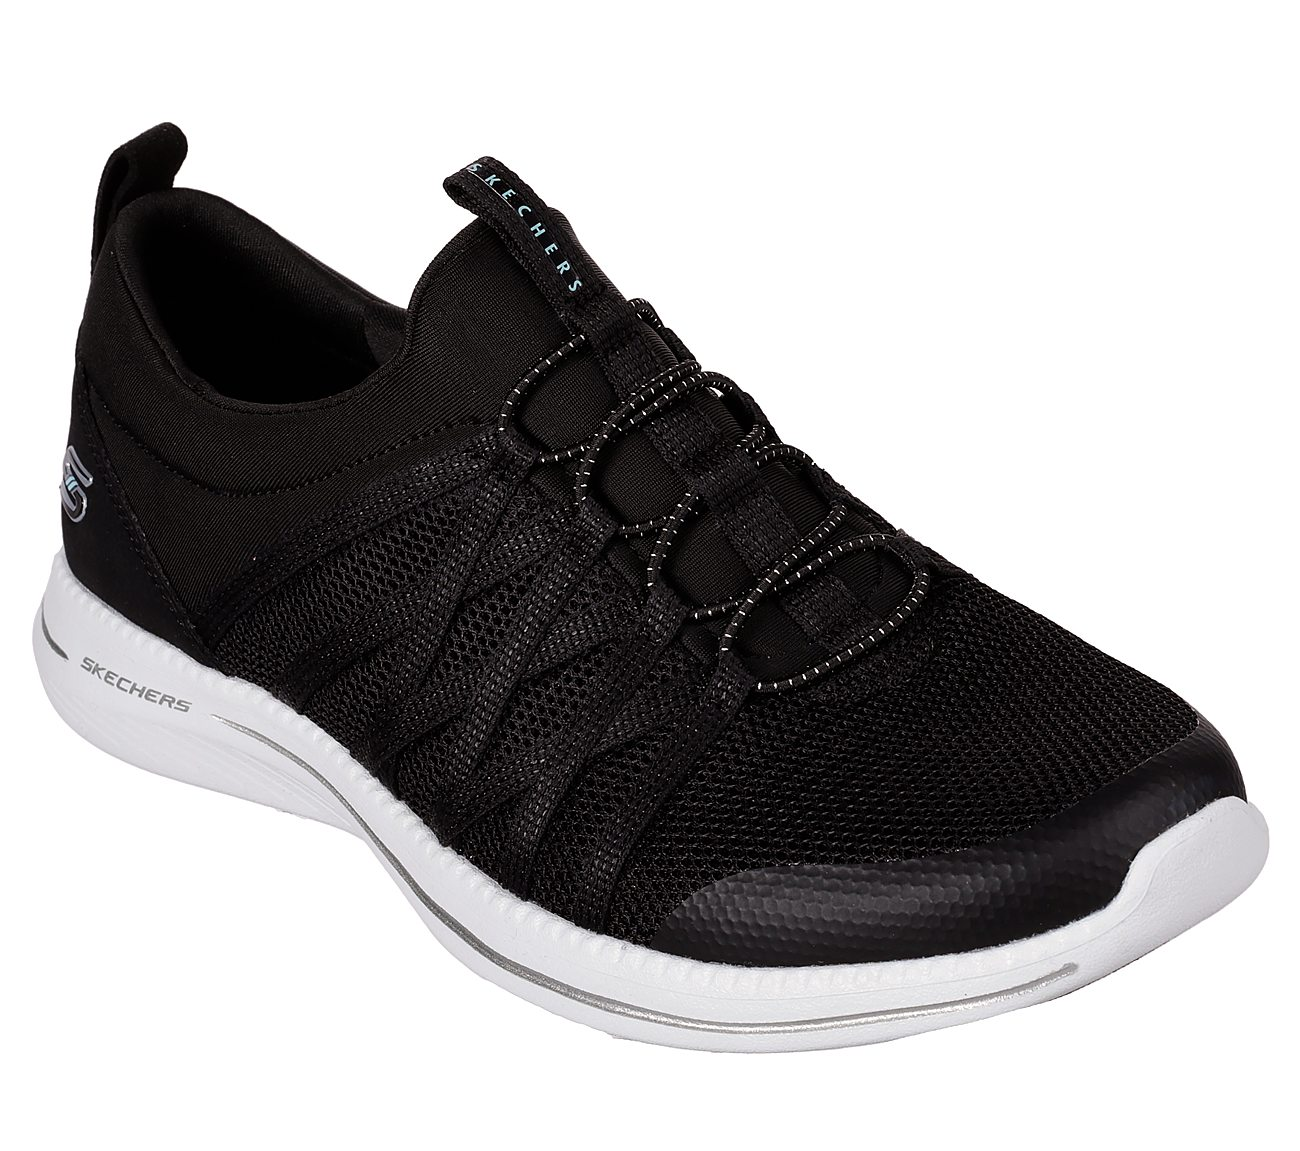 GREY Skechers Sport Active Womens City Pro